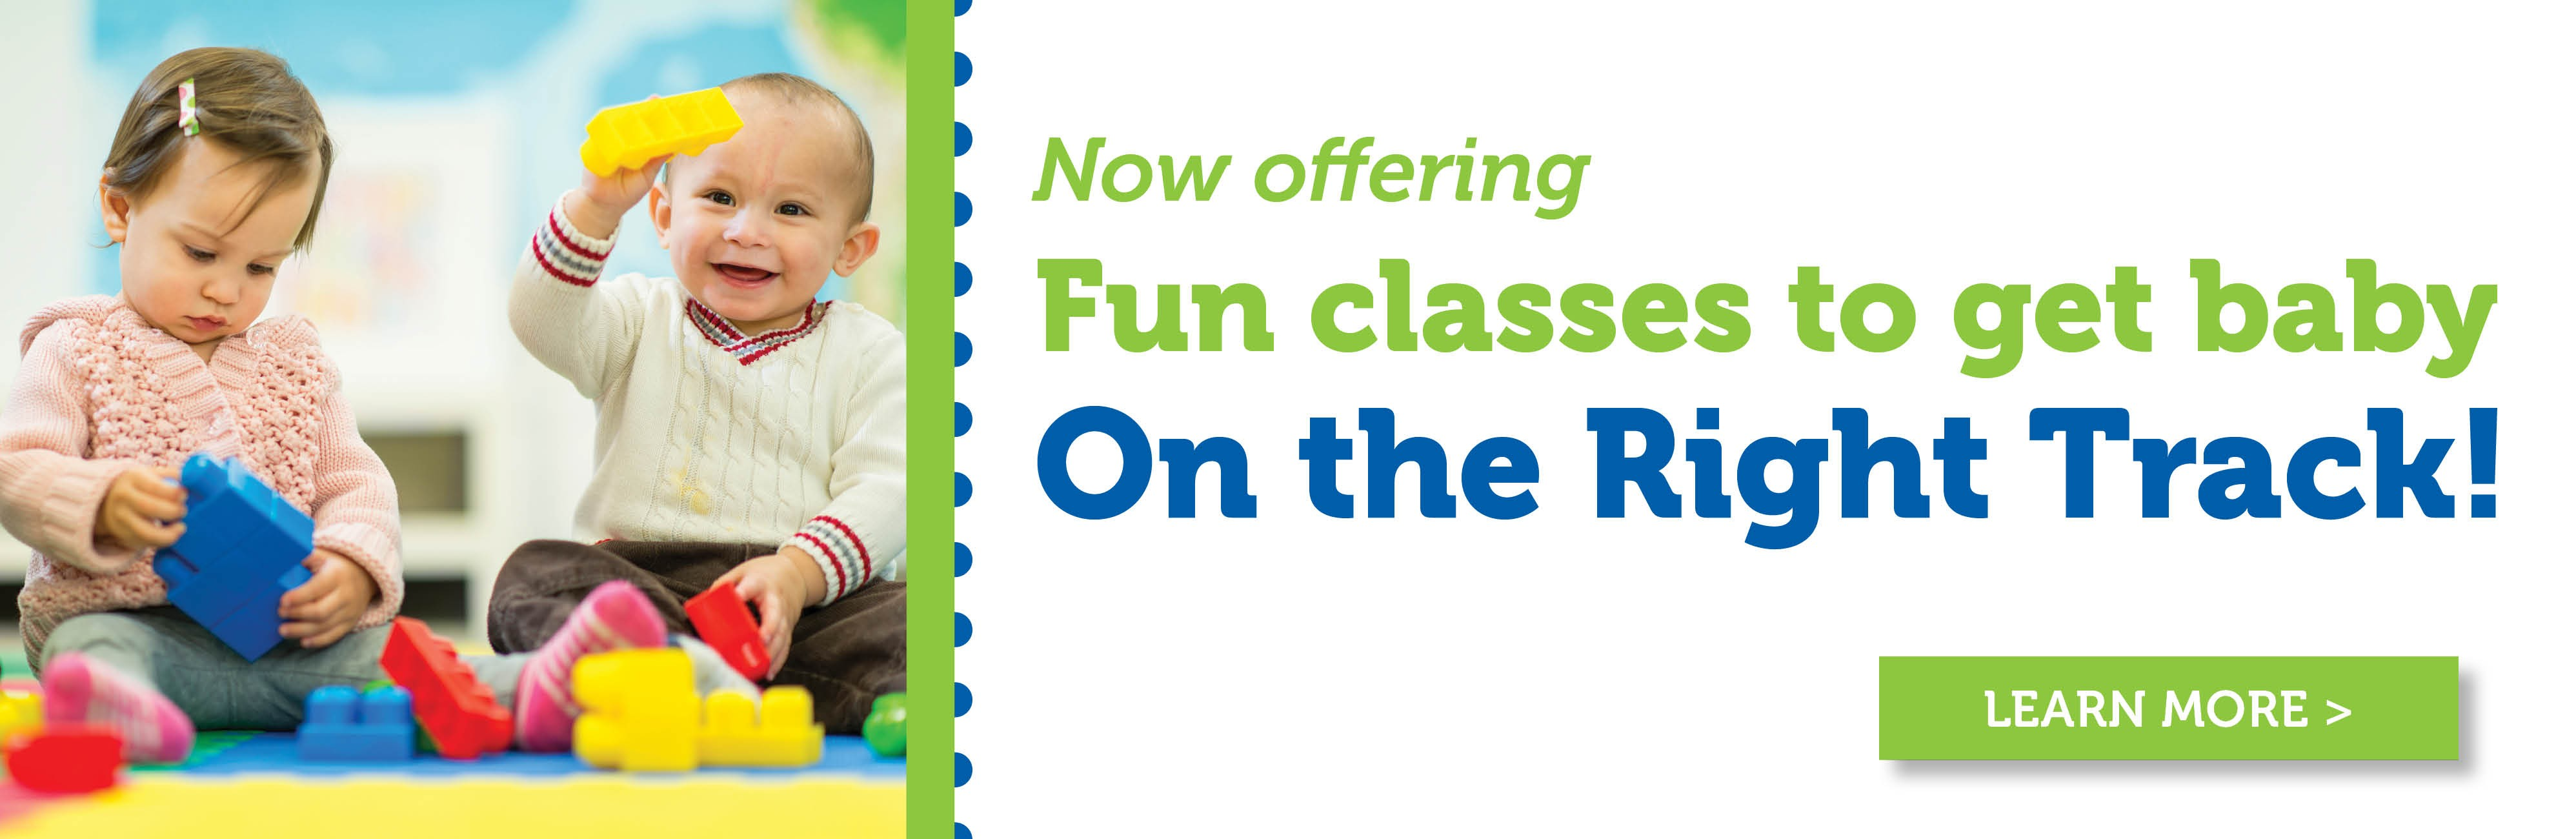 Learn more about On The Right Track classes for baby